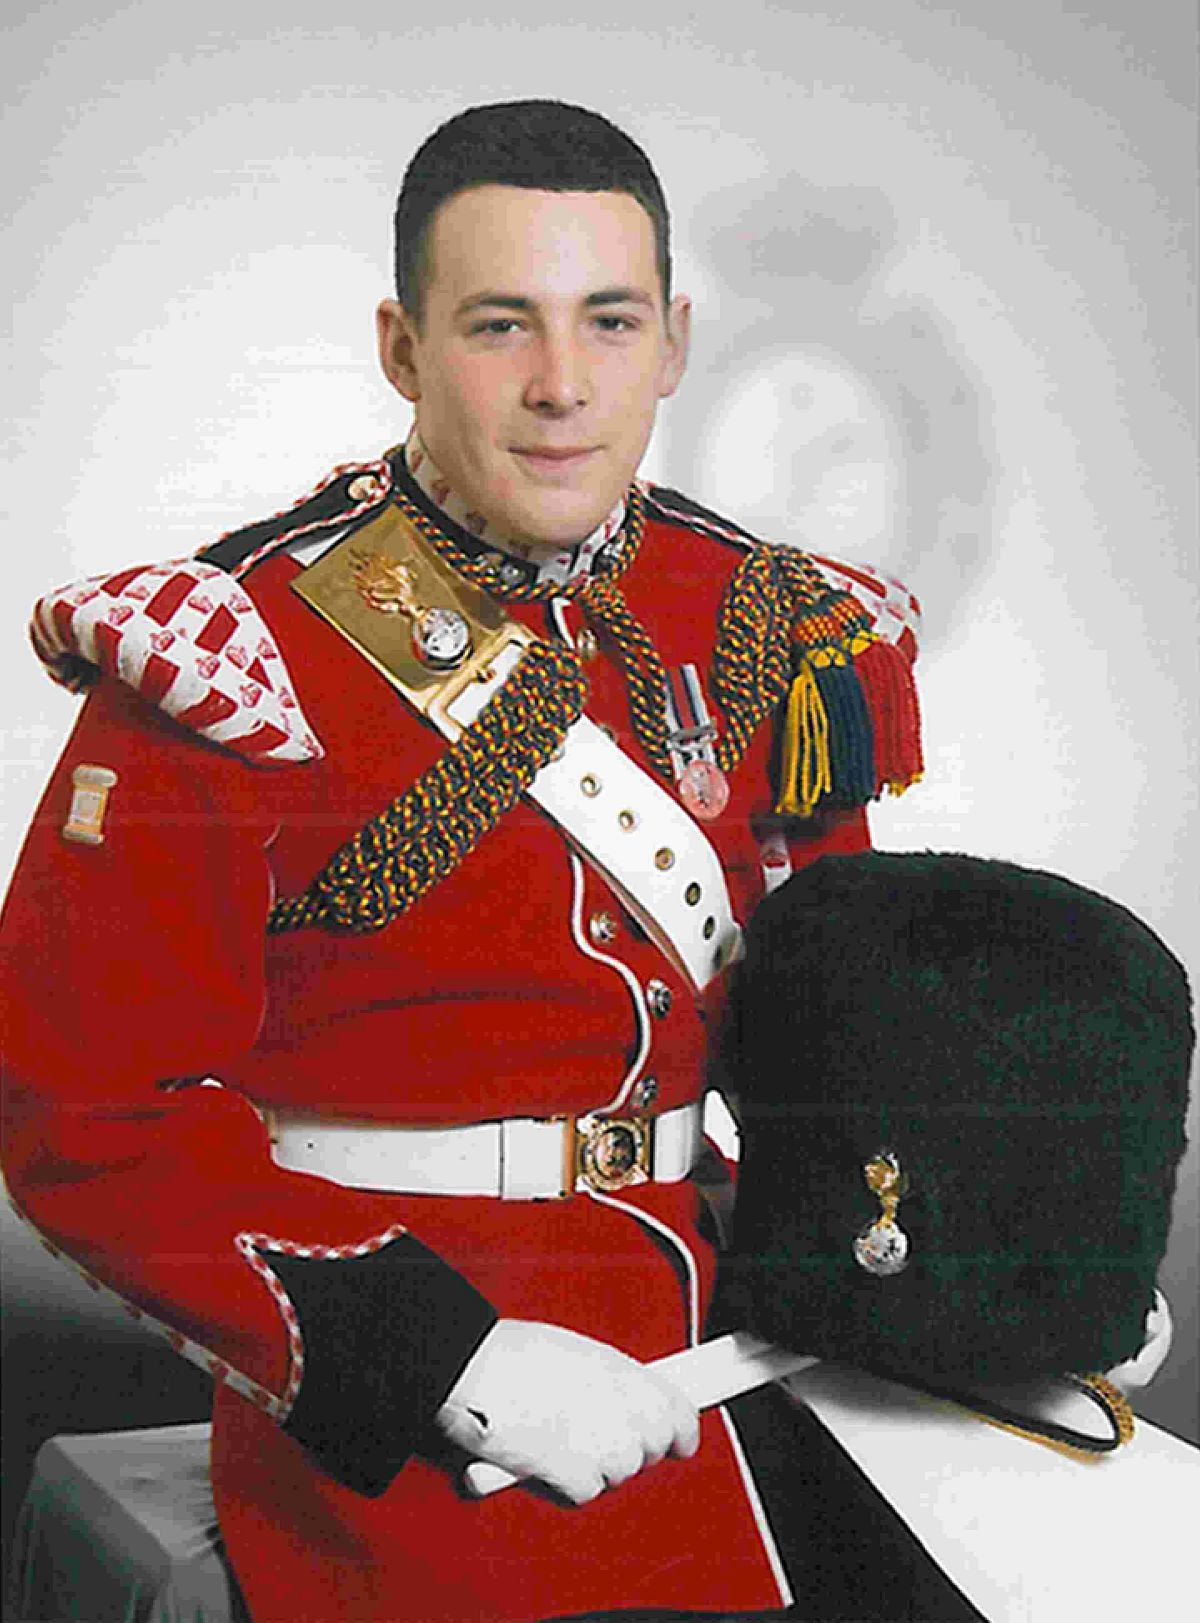 Lee Rigby memorial bike ride one year after Woolwich attack